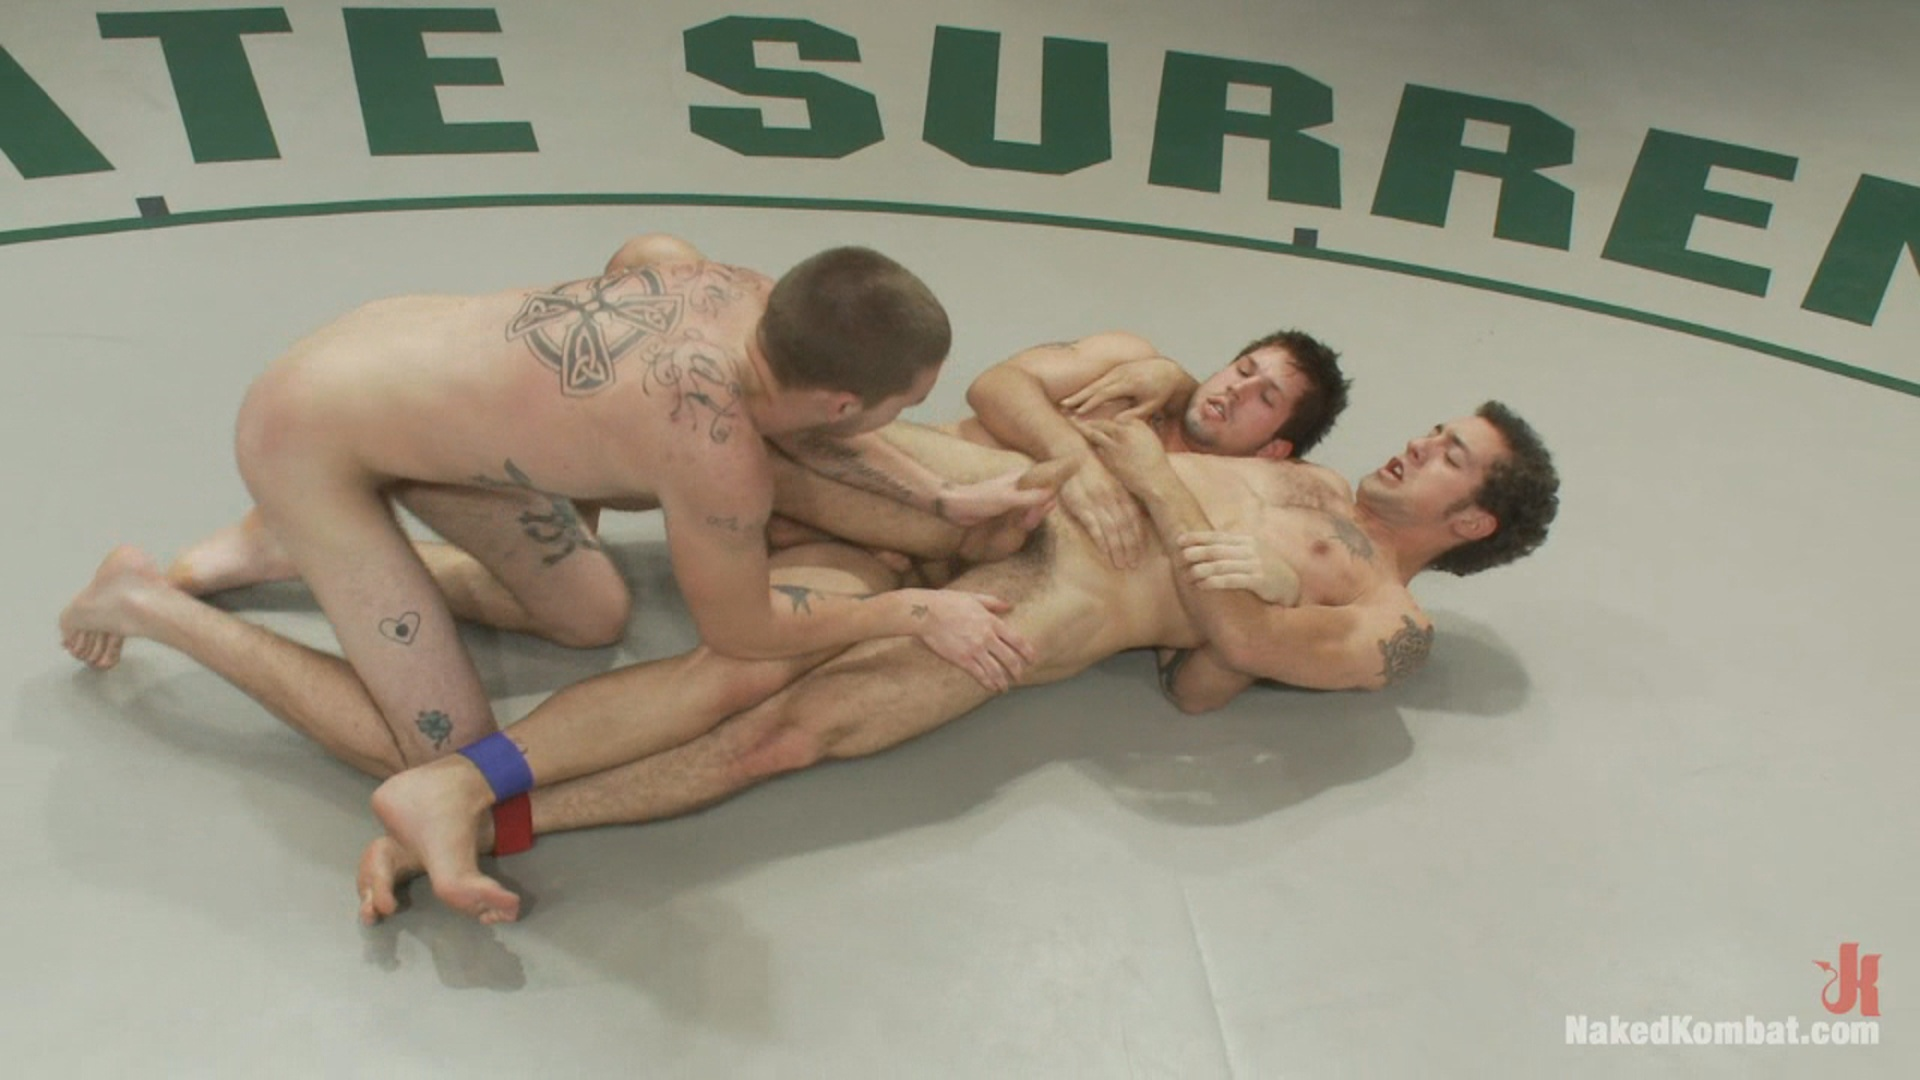 Naked Kombat: Hayden Russo And Jake Austin VS DJ And Brandon Bangs The Tag Team Match